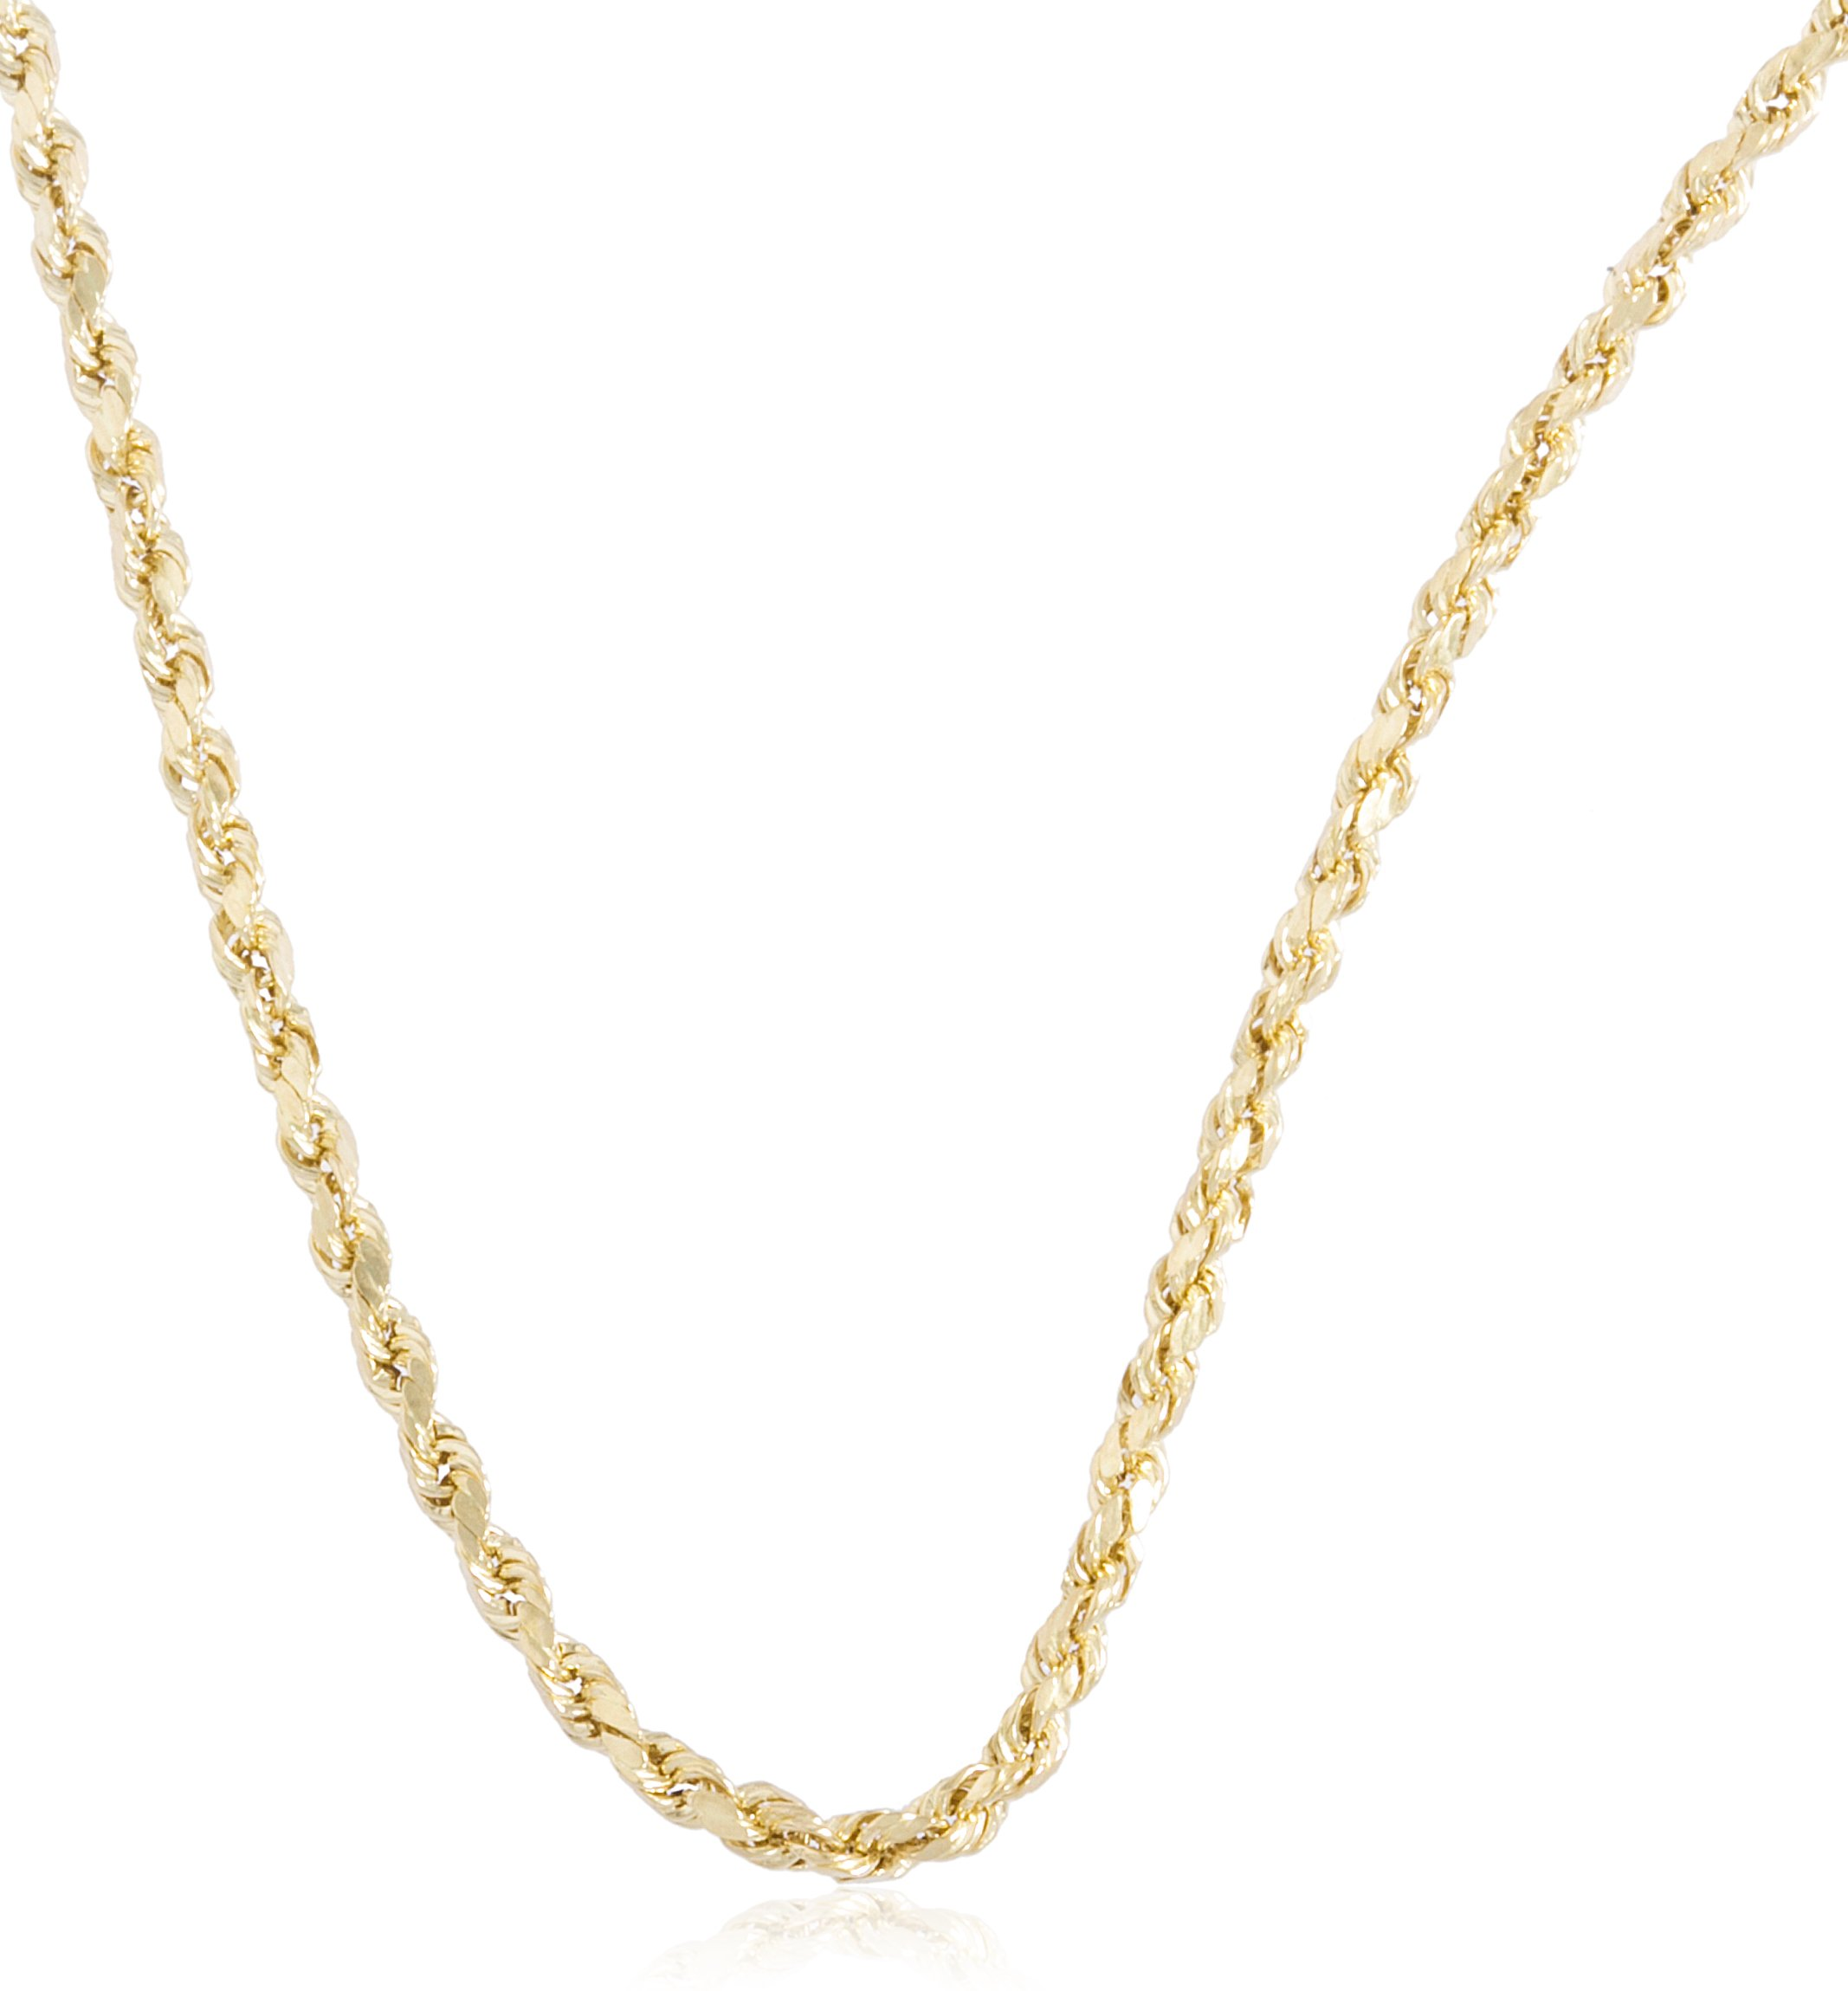 10k Yellow Gold 2mm D-cut Rope Chain Necklace - 18'' to 26'' Available (26 Inches) (GO-1253)